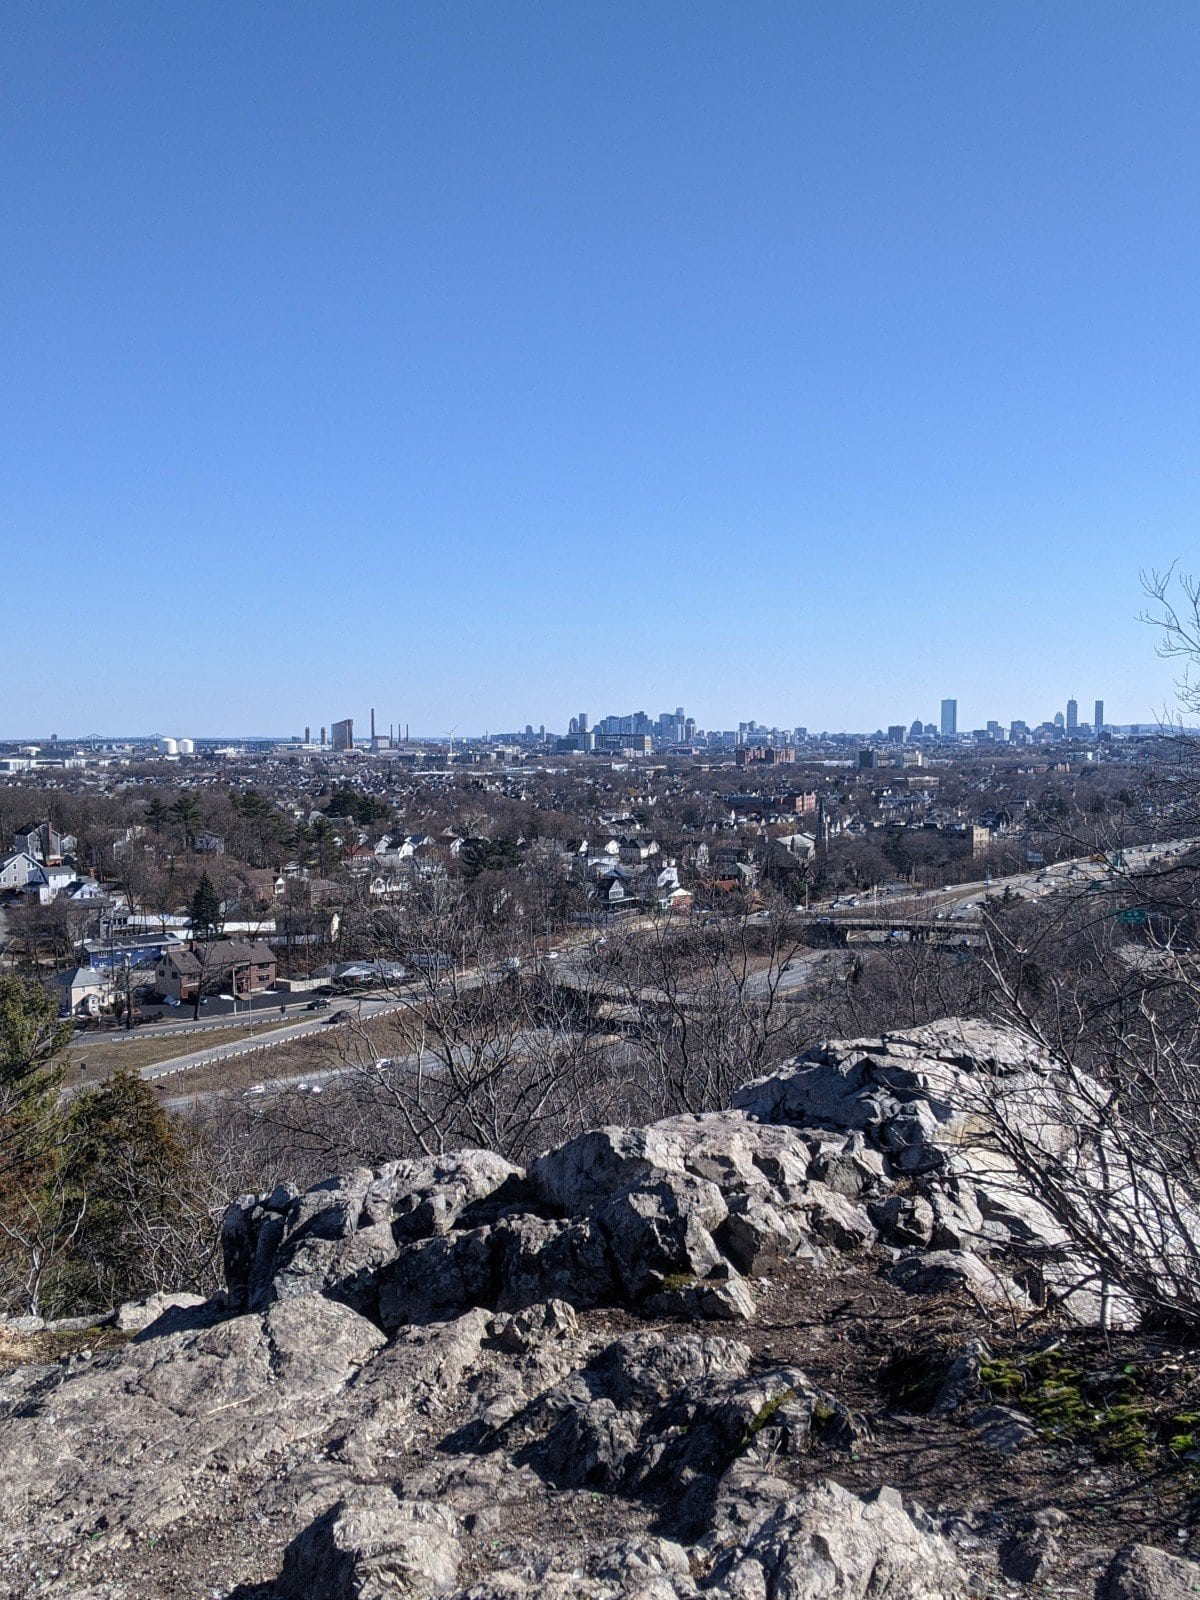 View of the Boston skyline on the Skyline Trail at Middlesex Fells, photo by Roaming Boston